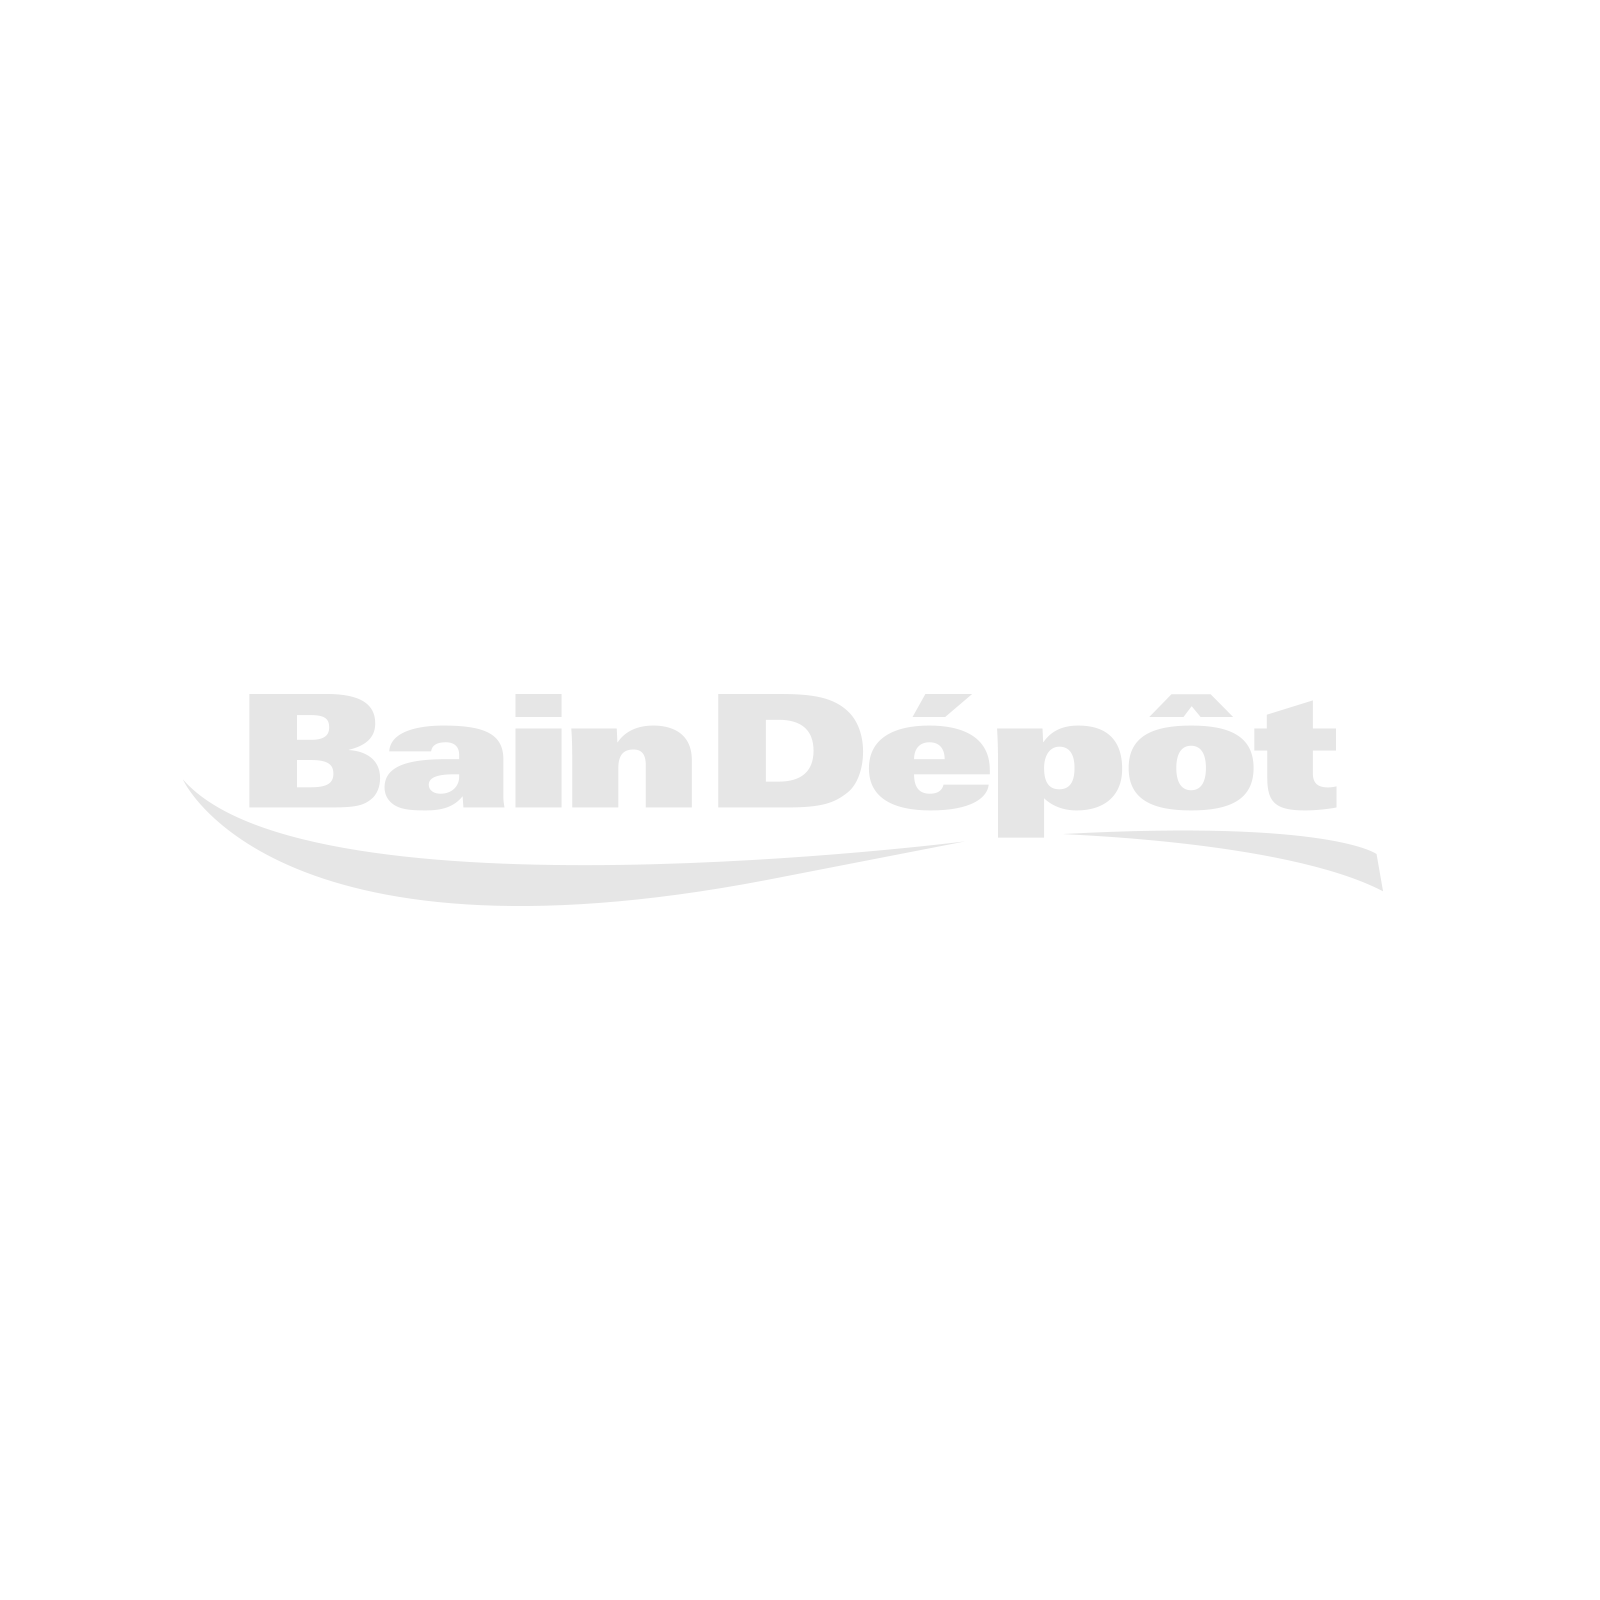 Pair of stainless steel kitchen sink grids